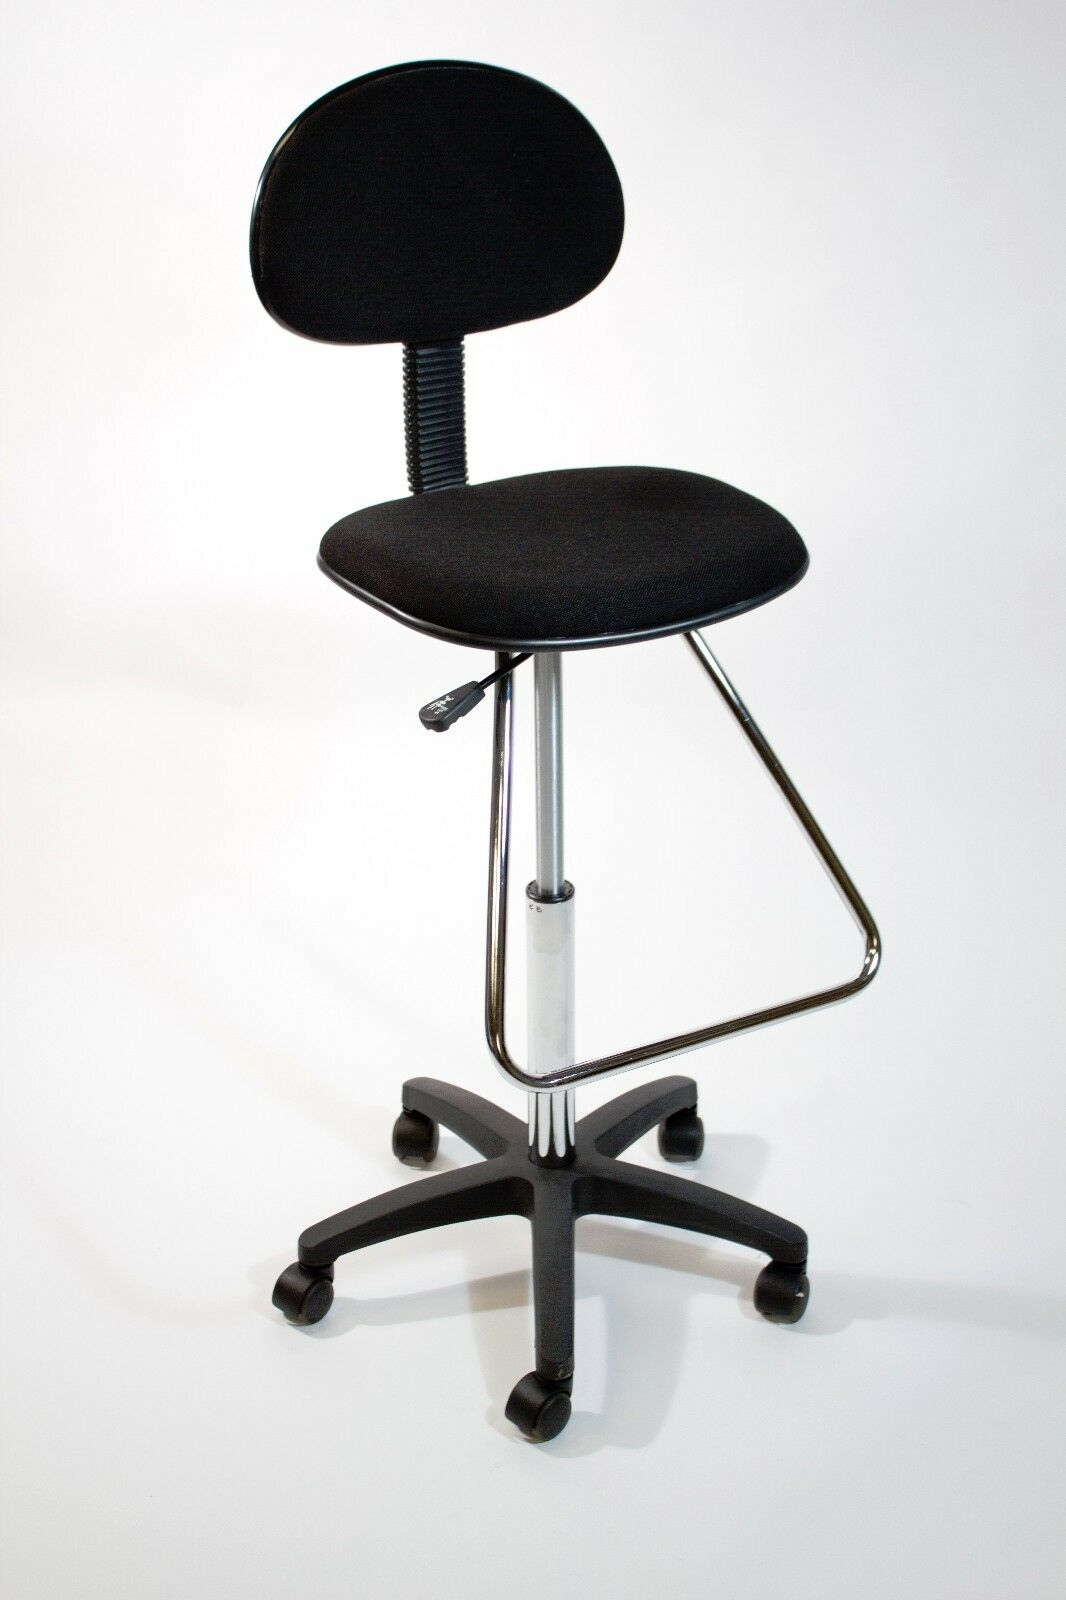 Black Drafting Counter Height Stool Chair Art Bank Swivel Adjustable Tall N